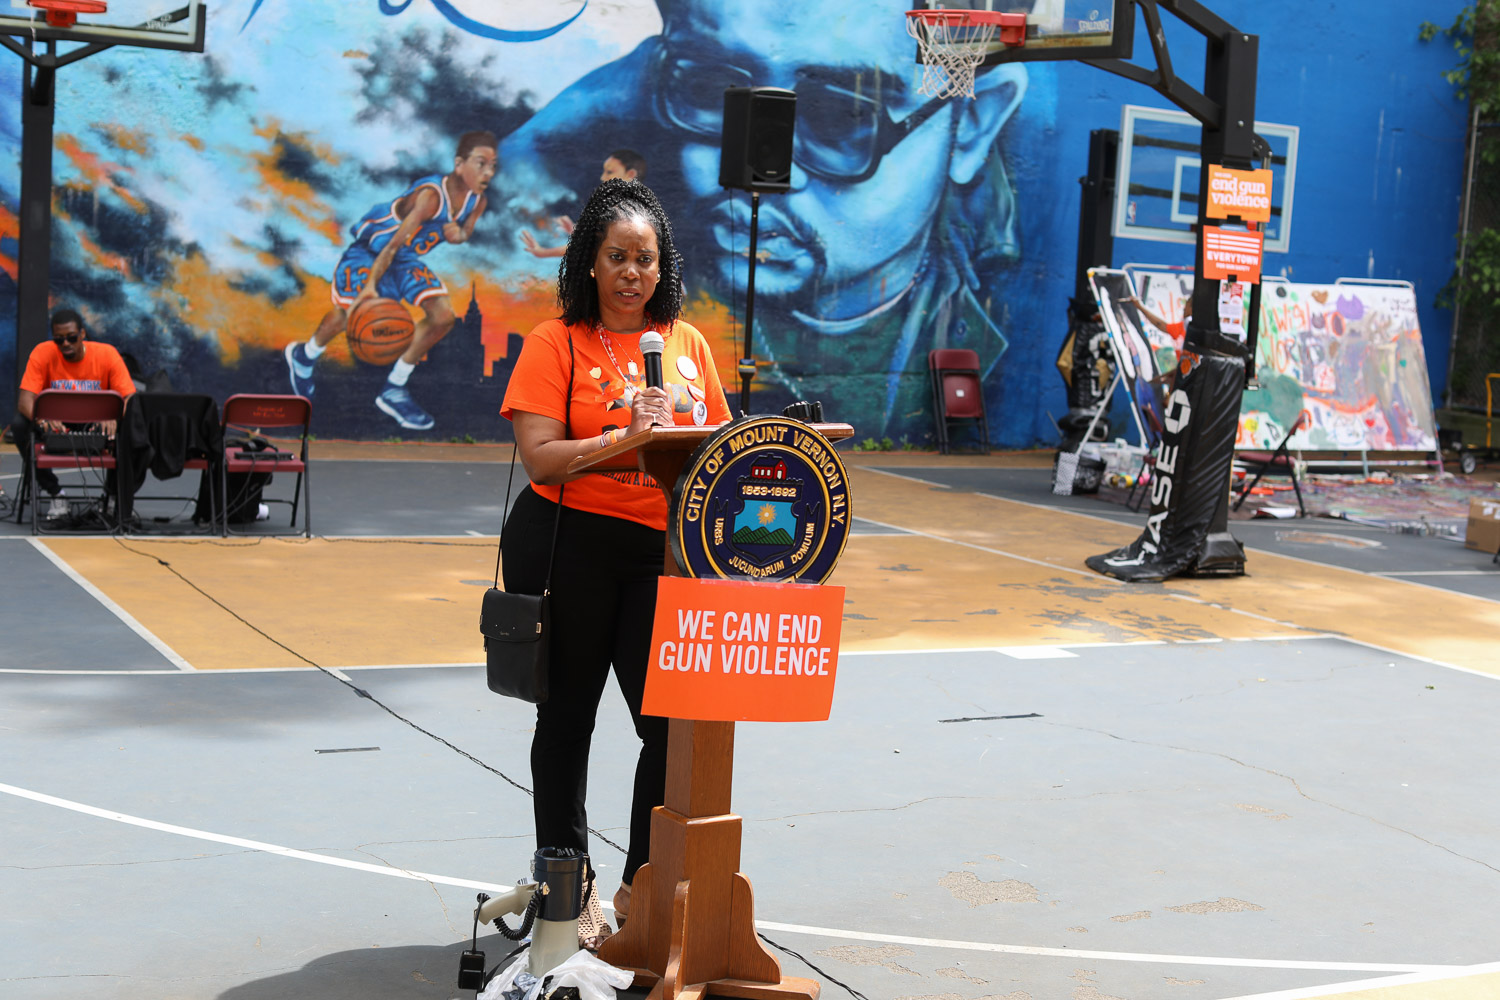 Nadine McKenzie of The Shamoya McKenzie Foundation Speaks At The Moms Demand Action for Gun Sense in America Gun, Violence Awareness Week at Heavy D Memorial Park in Mount Vernon June 9, 2019. Photography by Tyrone Z. McCants / Zire Photography